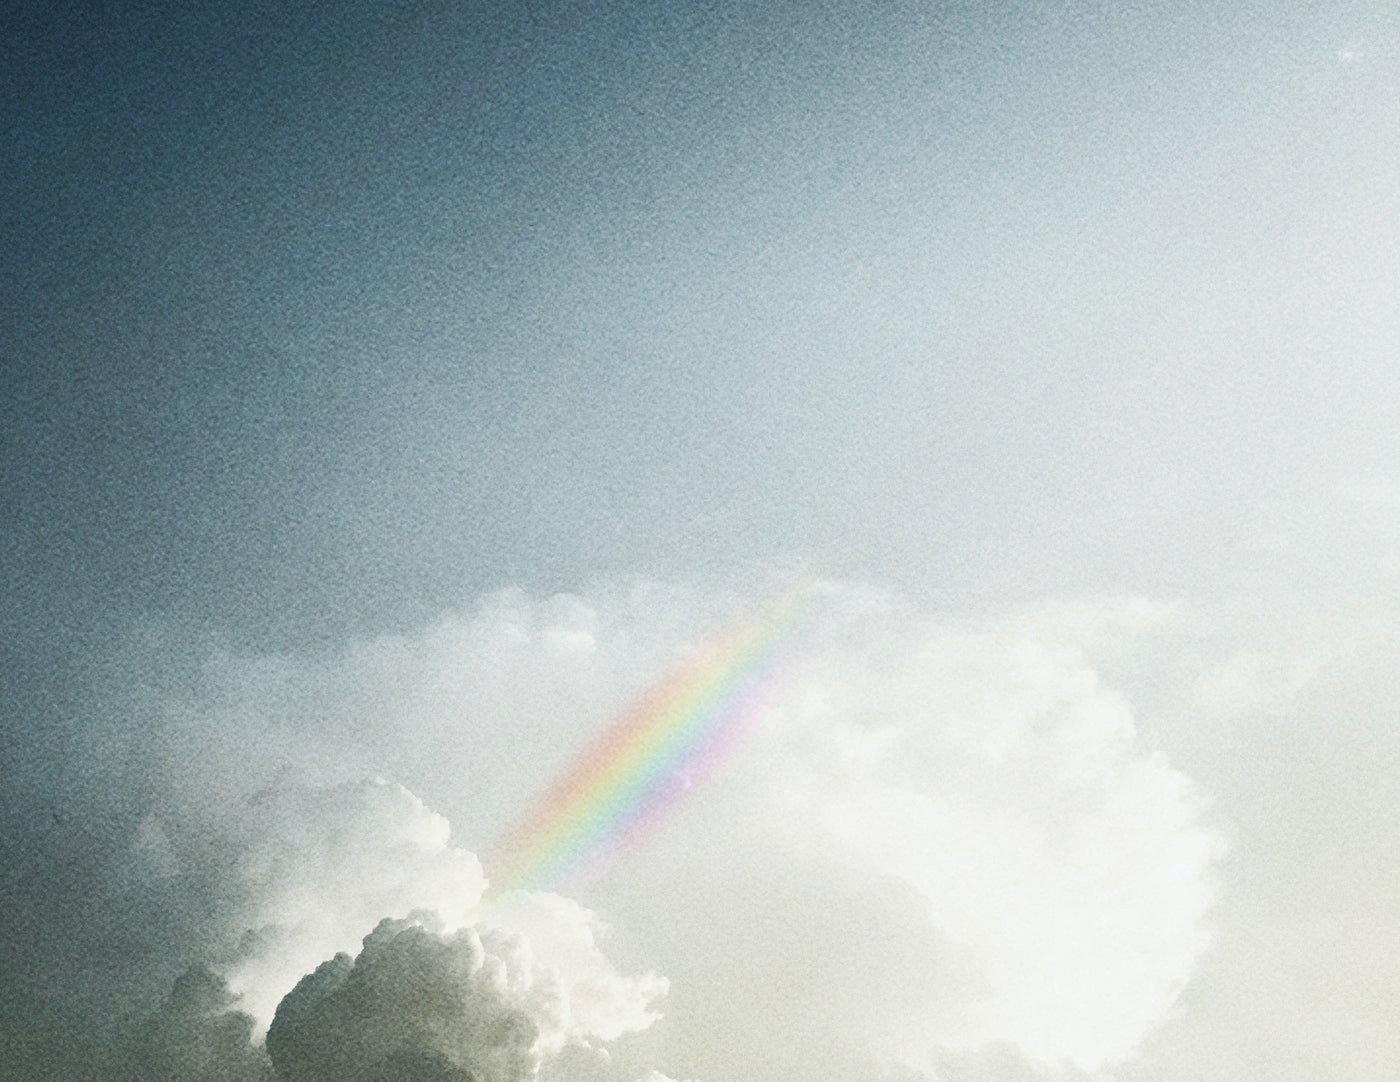 image of clouds and rainbow